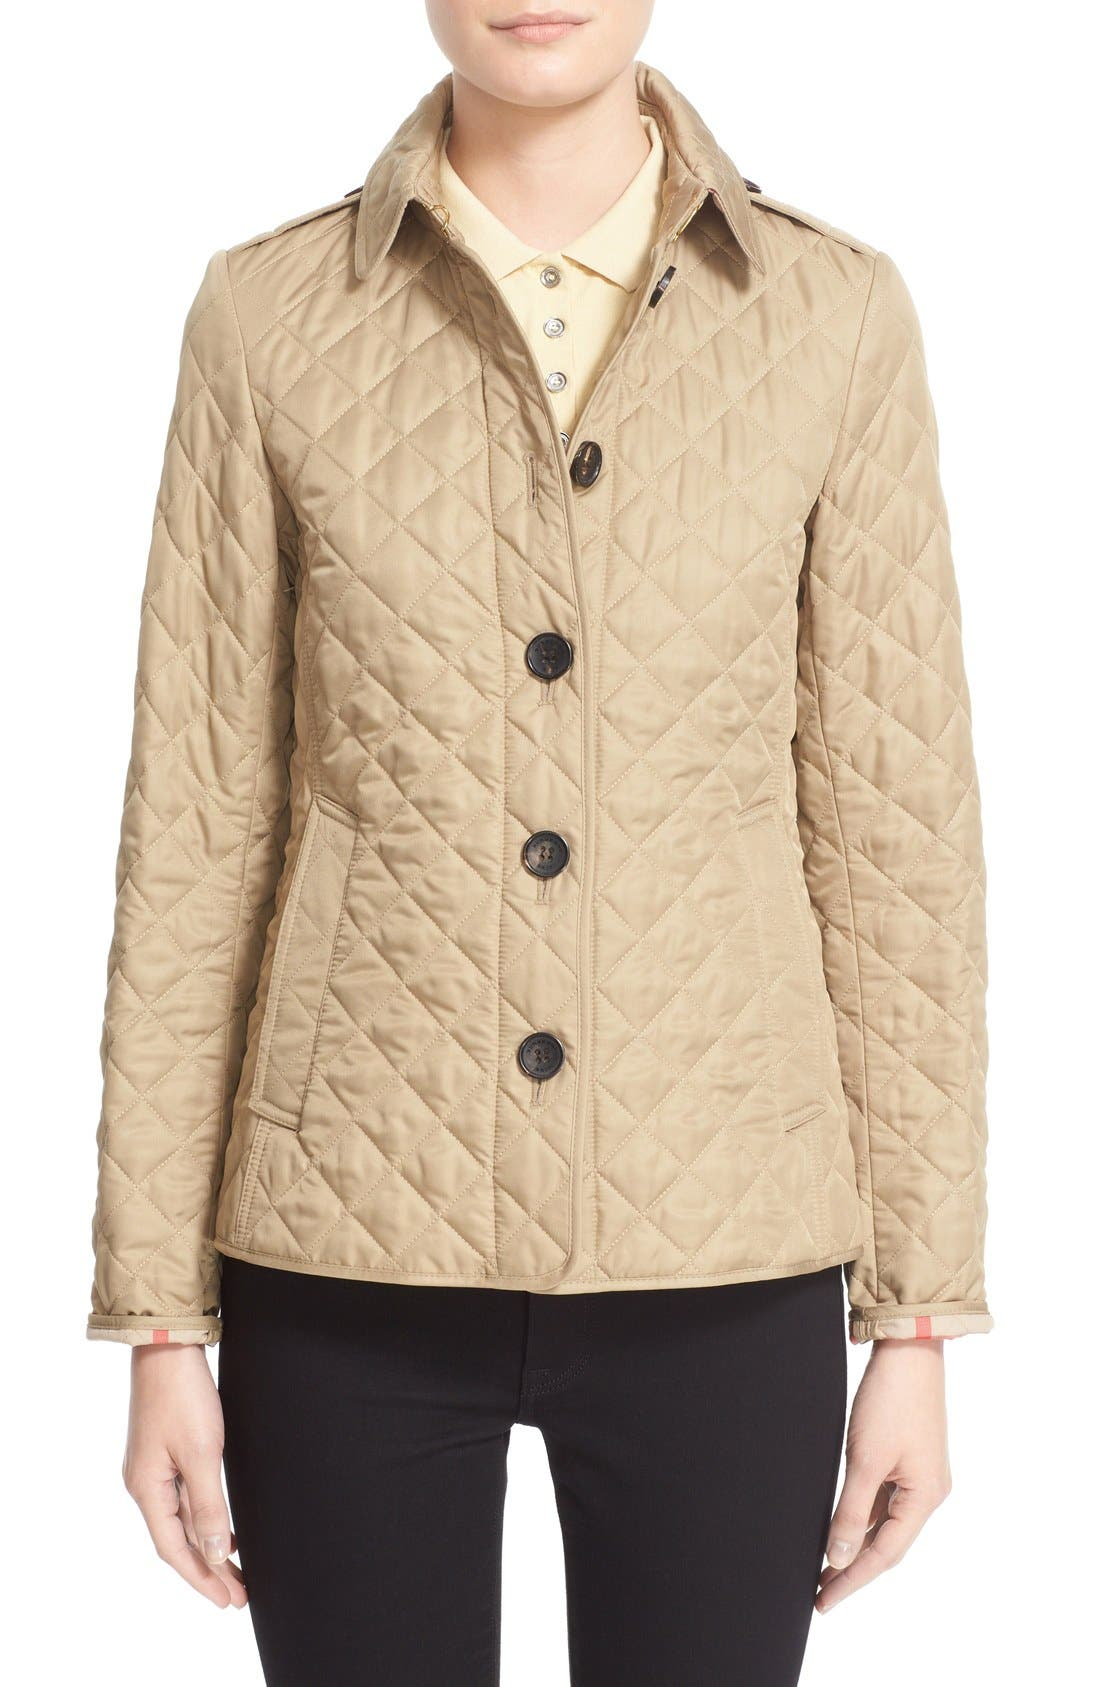 Find Beige women's jackets at ShopStyle. Shop the latest collection of Beige women's jackets from the most popular stores - all in one place.